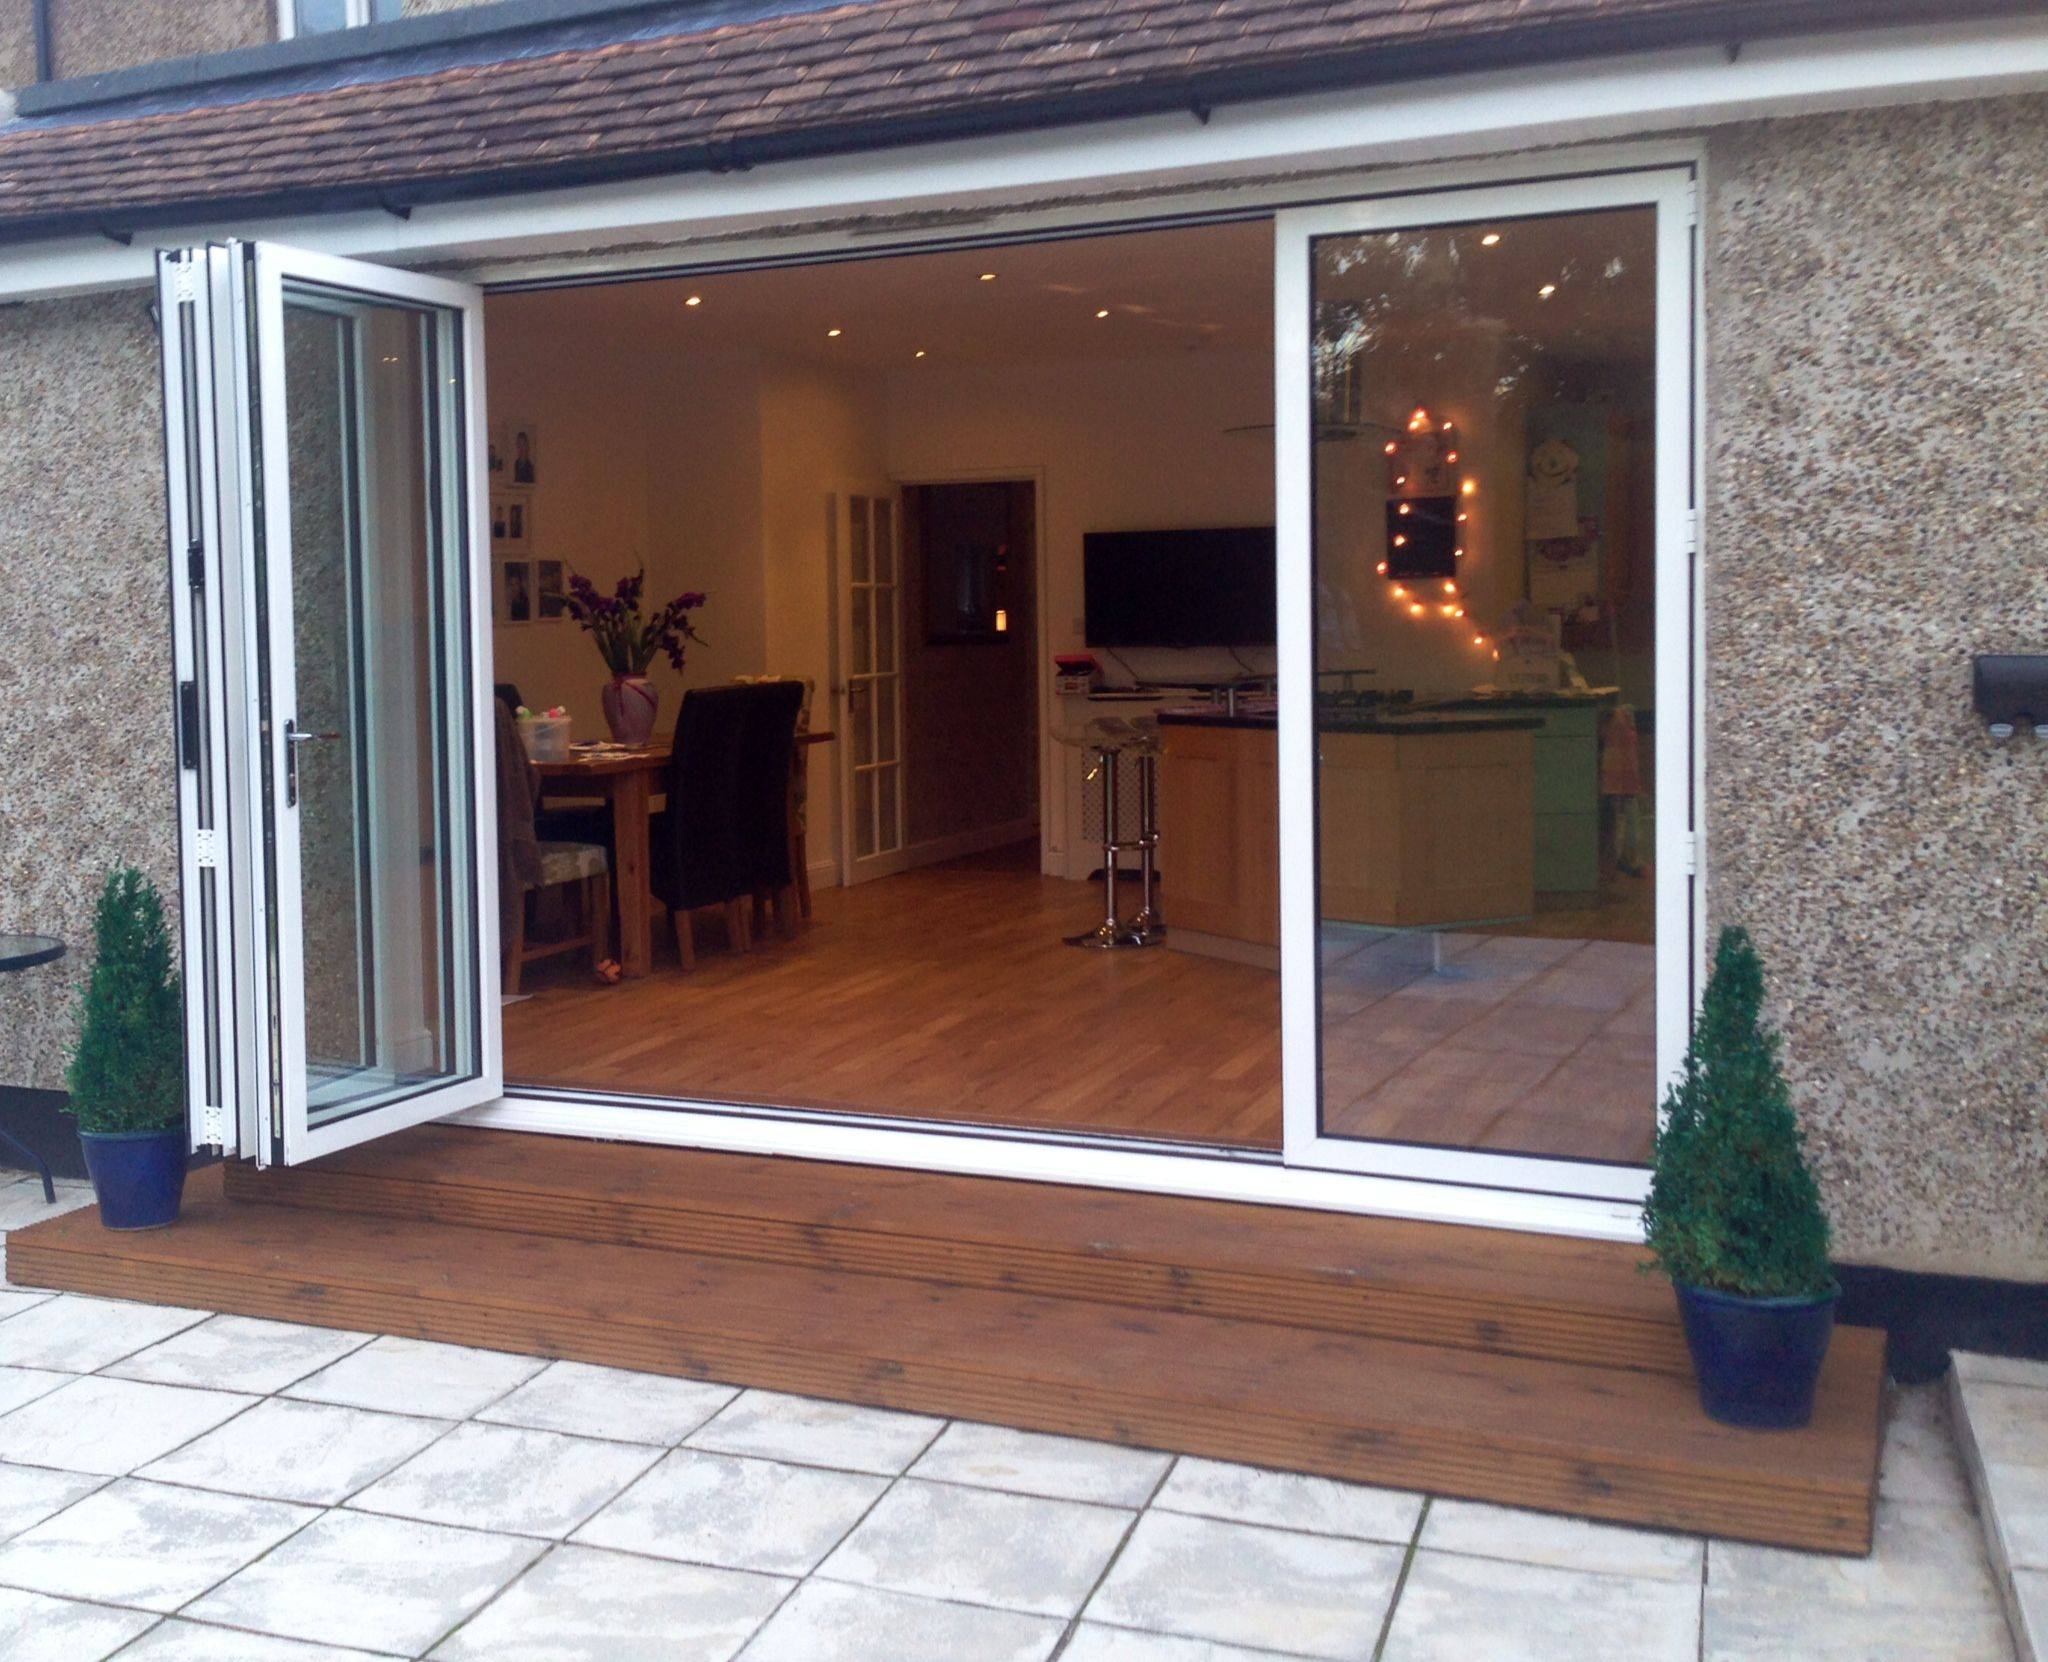 Stunning Aluminium Bi Folding Doors From Bi Folding Door Prices Design Price And Order Instantly Online Available With 12 M Folding Doors Doors Bifold Doors